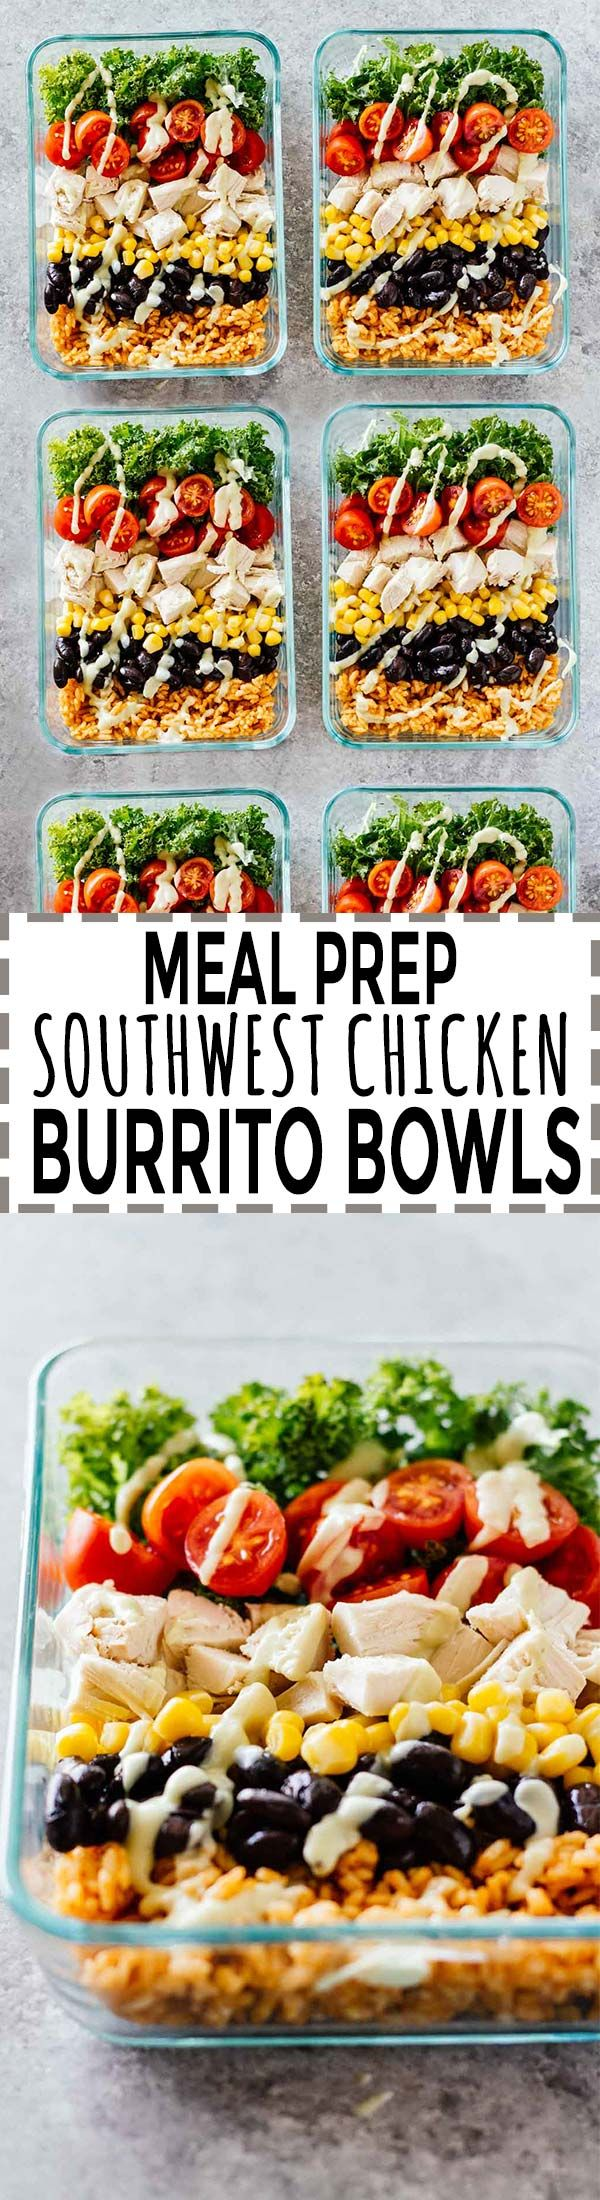 Meal Prep Southwest Chicken Burrito Bowls! SO delicious and easy to make. Gluten-free and perfect for a lunch on-the-go!